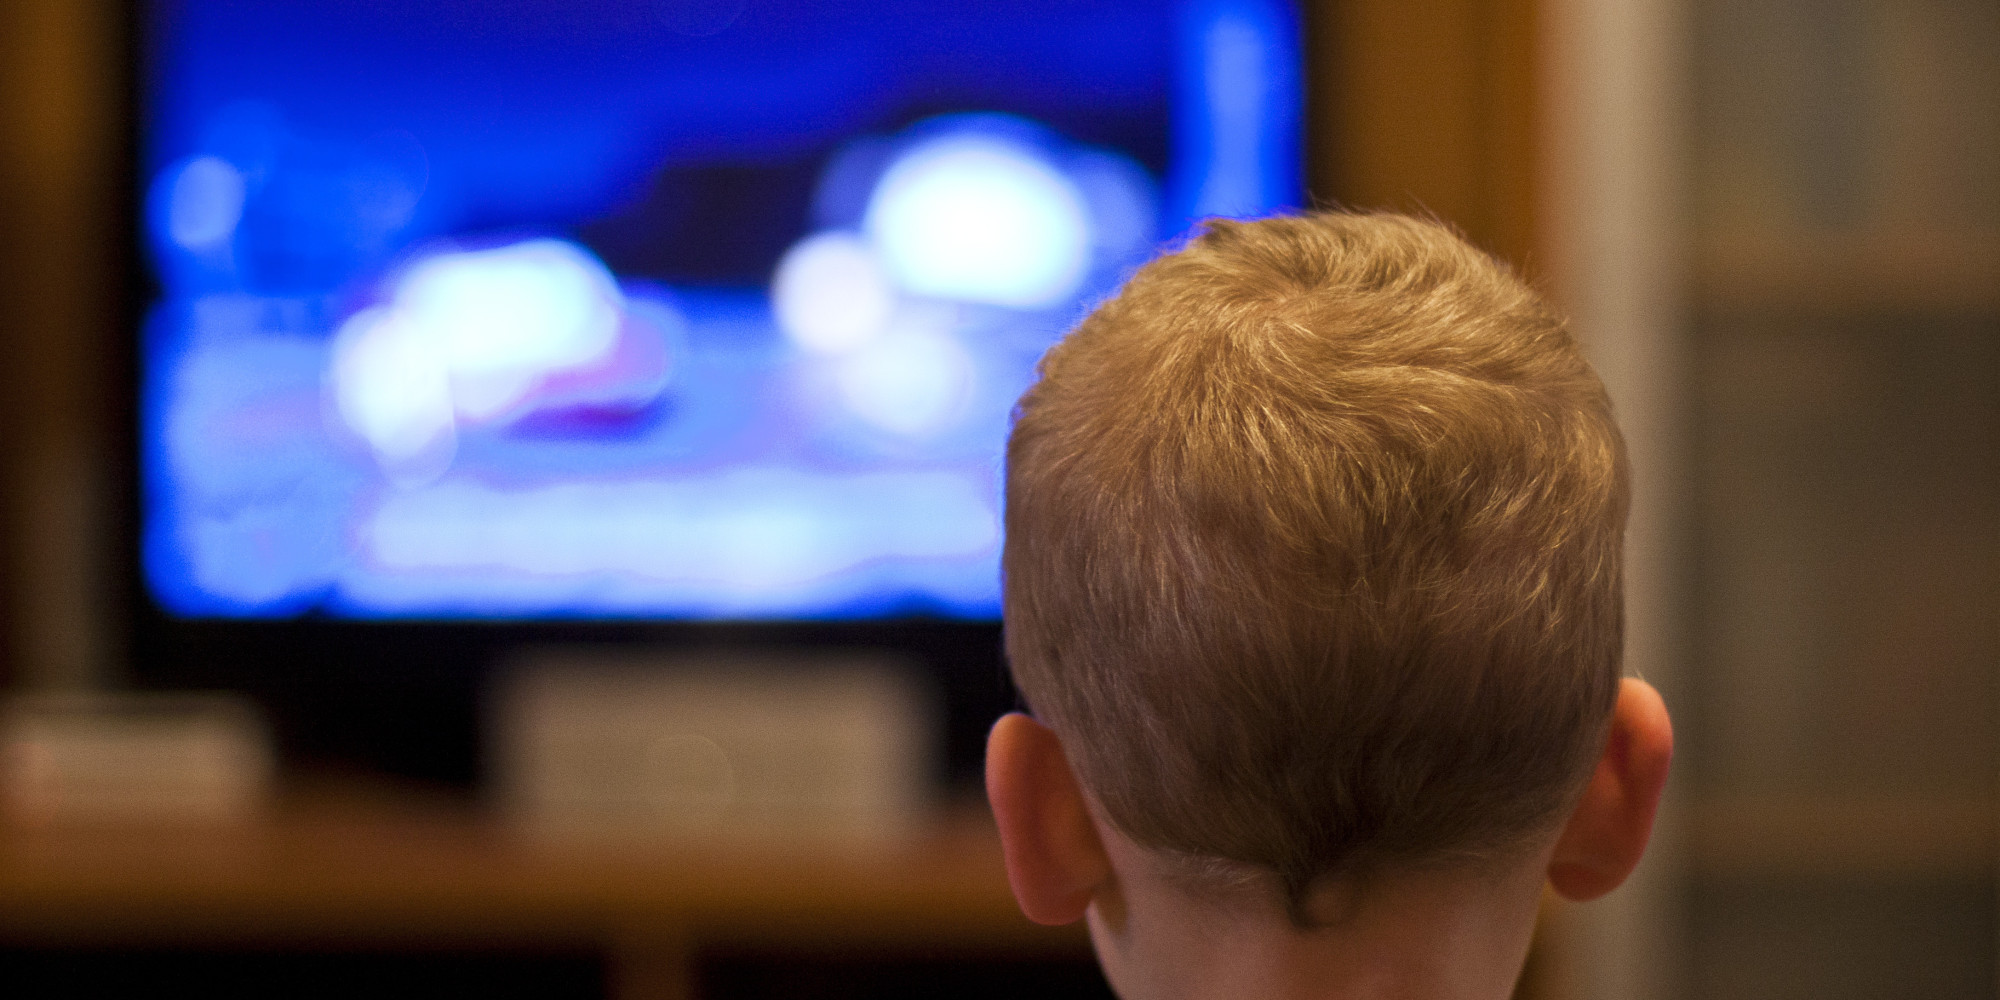 Kid with red hair watching a TV blurred in the background